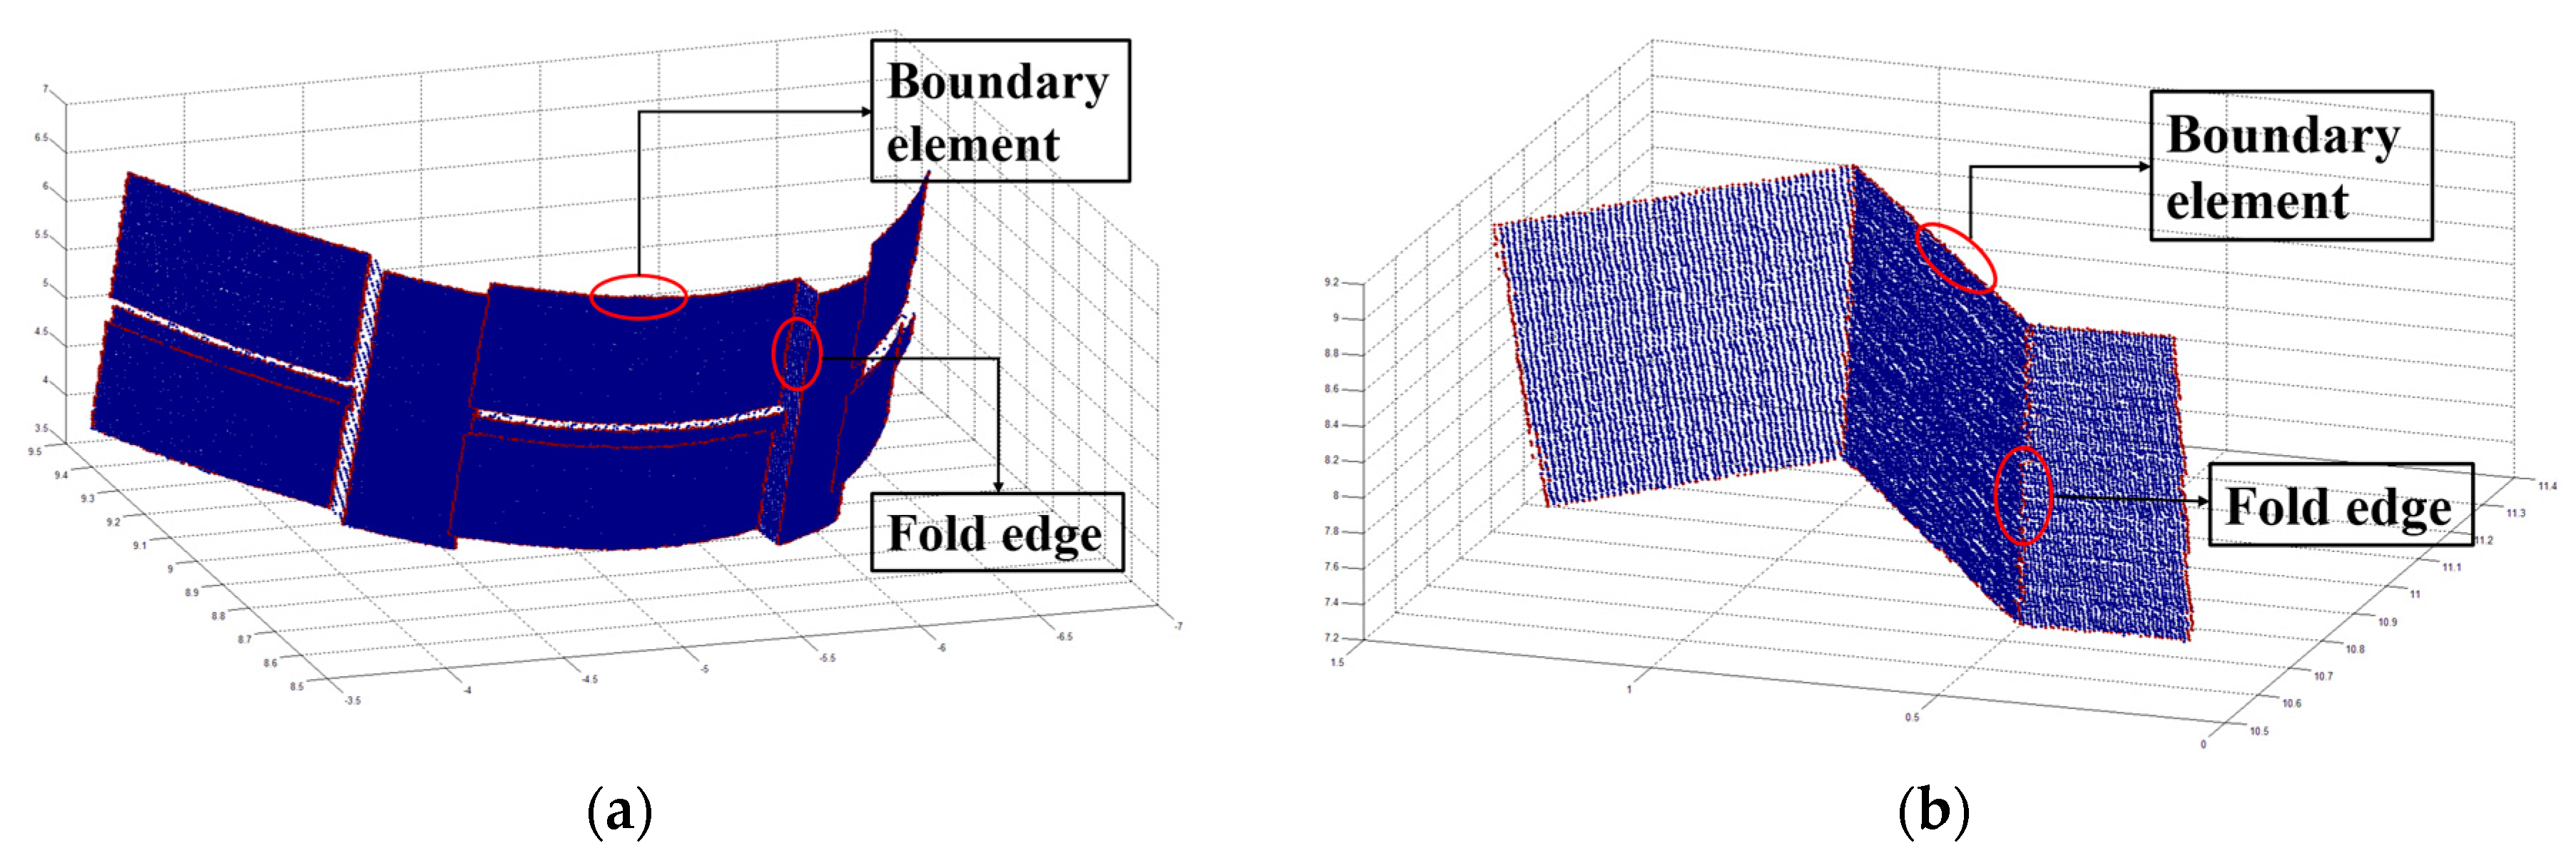 Remote Sensing | Free Full-Text | Edge Detection and Feature